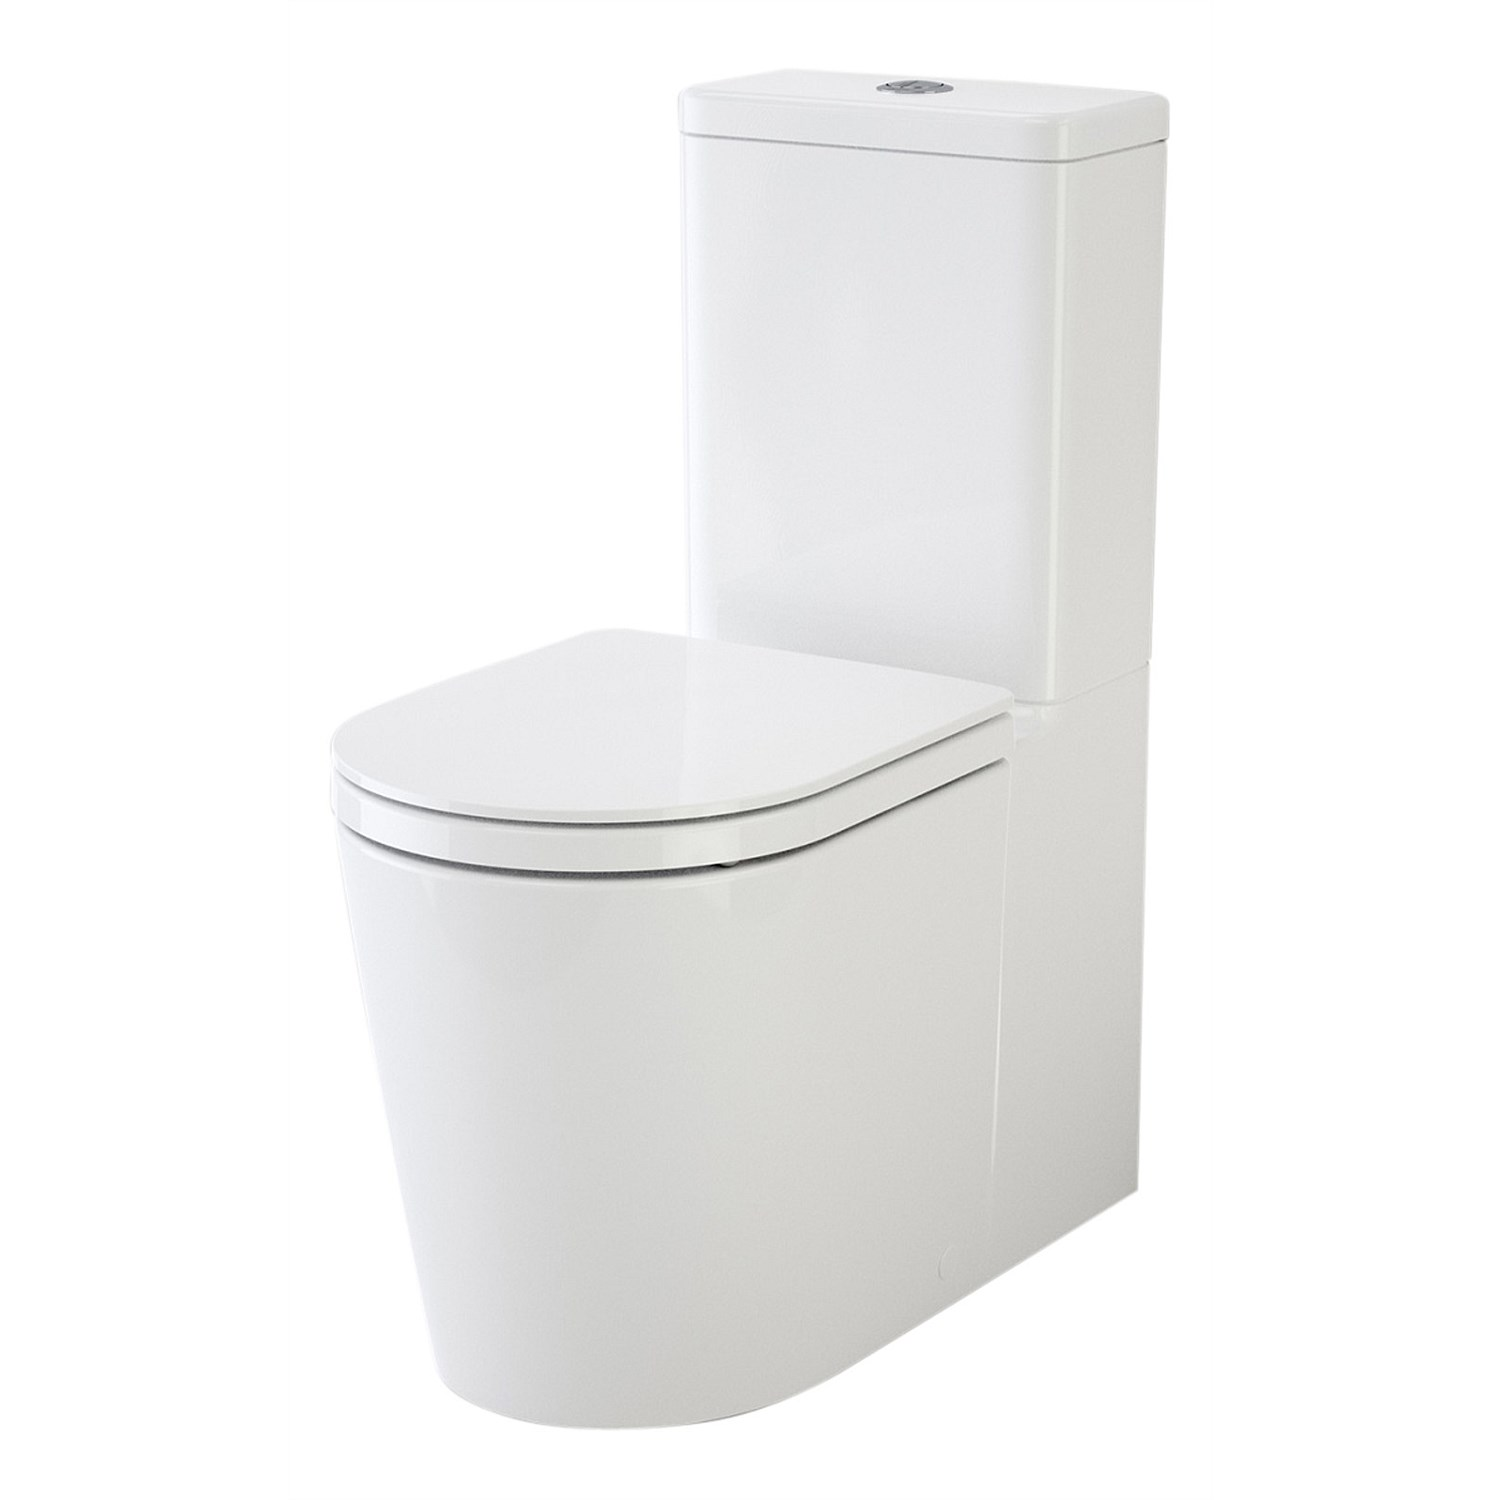 Toilet Suites Plumbing World Caroma Liano Wall Faced